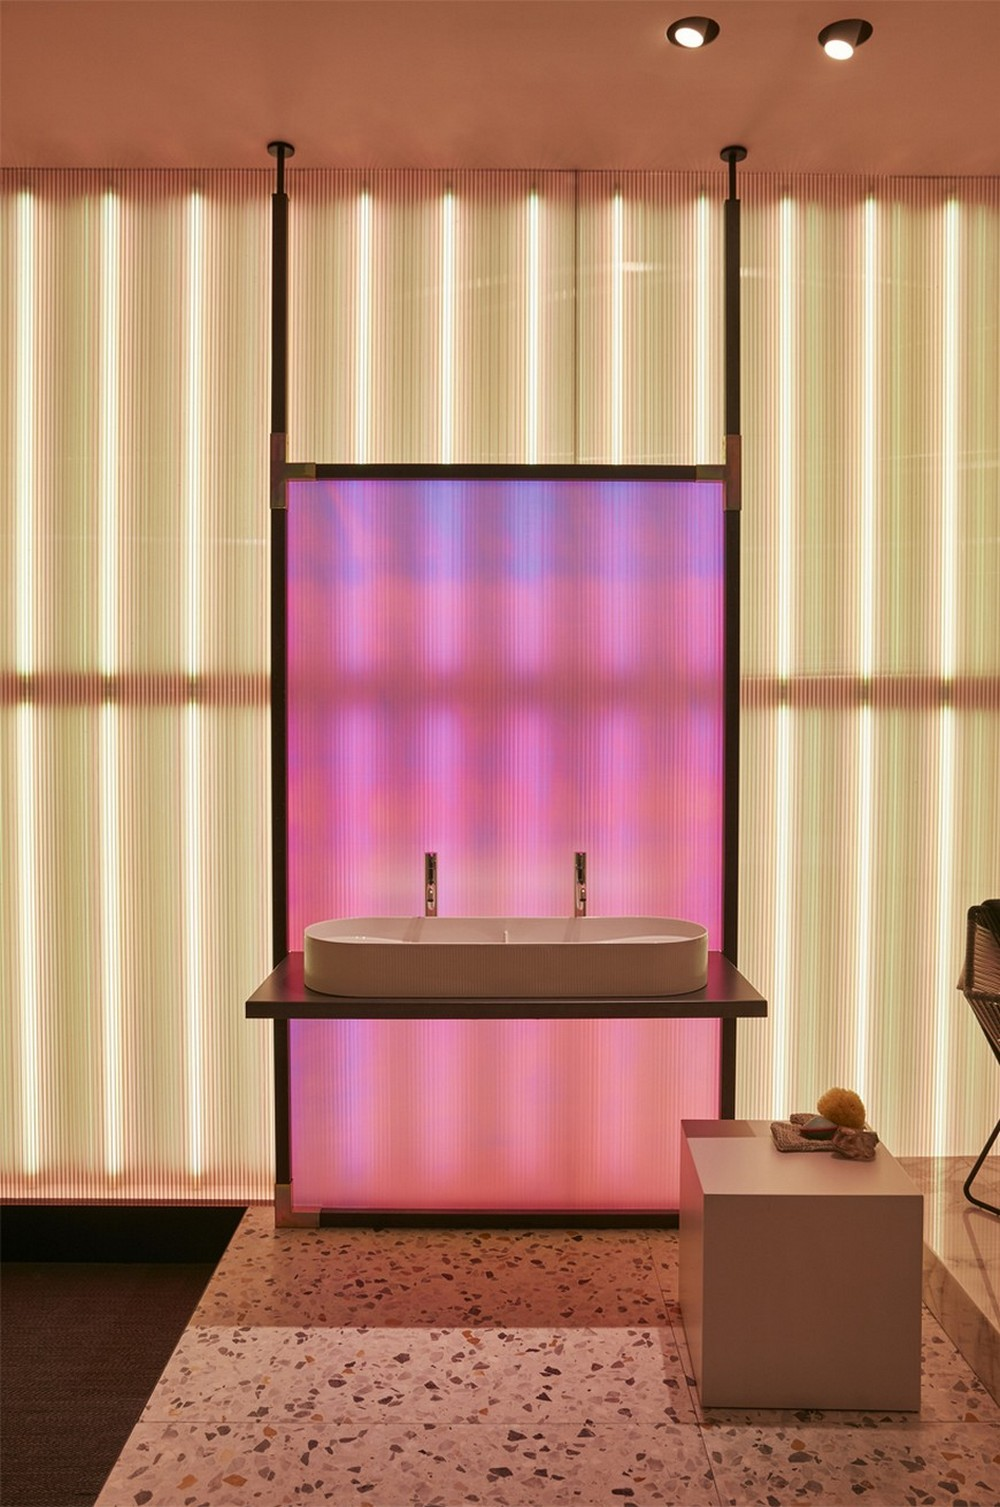 ICFF 2019, ICFF, New York, Maison Valentina, Graff, Laufen, Axor icff 2019 Best Luxury Bathrooms Brands That You Can Visit At ICFF 2019 3 Luxury Bathrooms Brands That You Can Visit At ICFF 2019 5